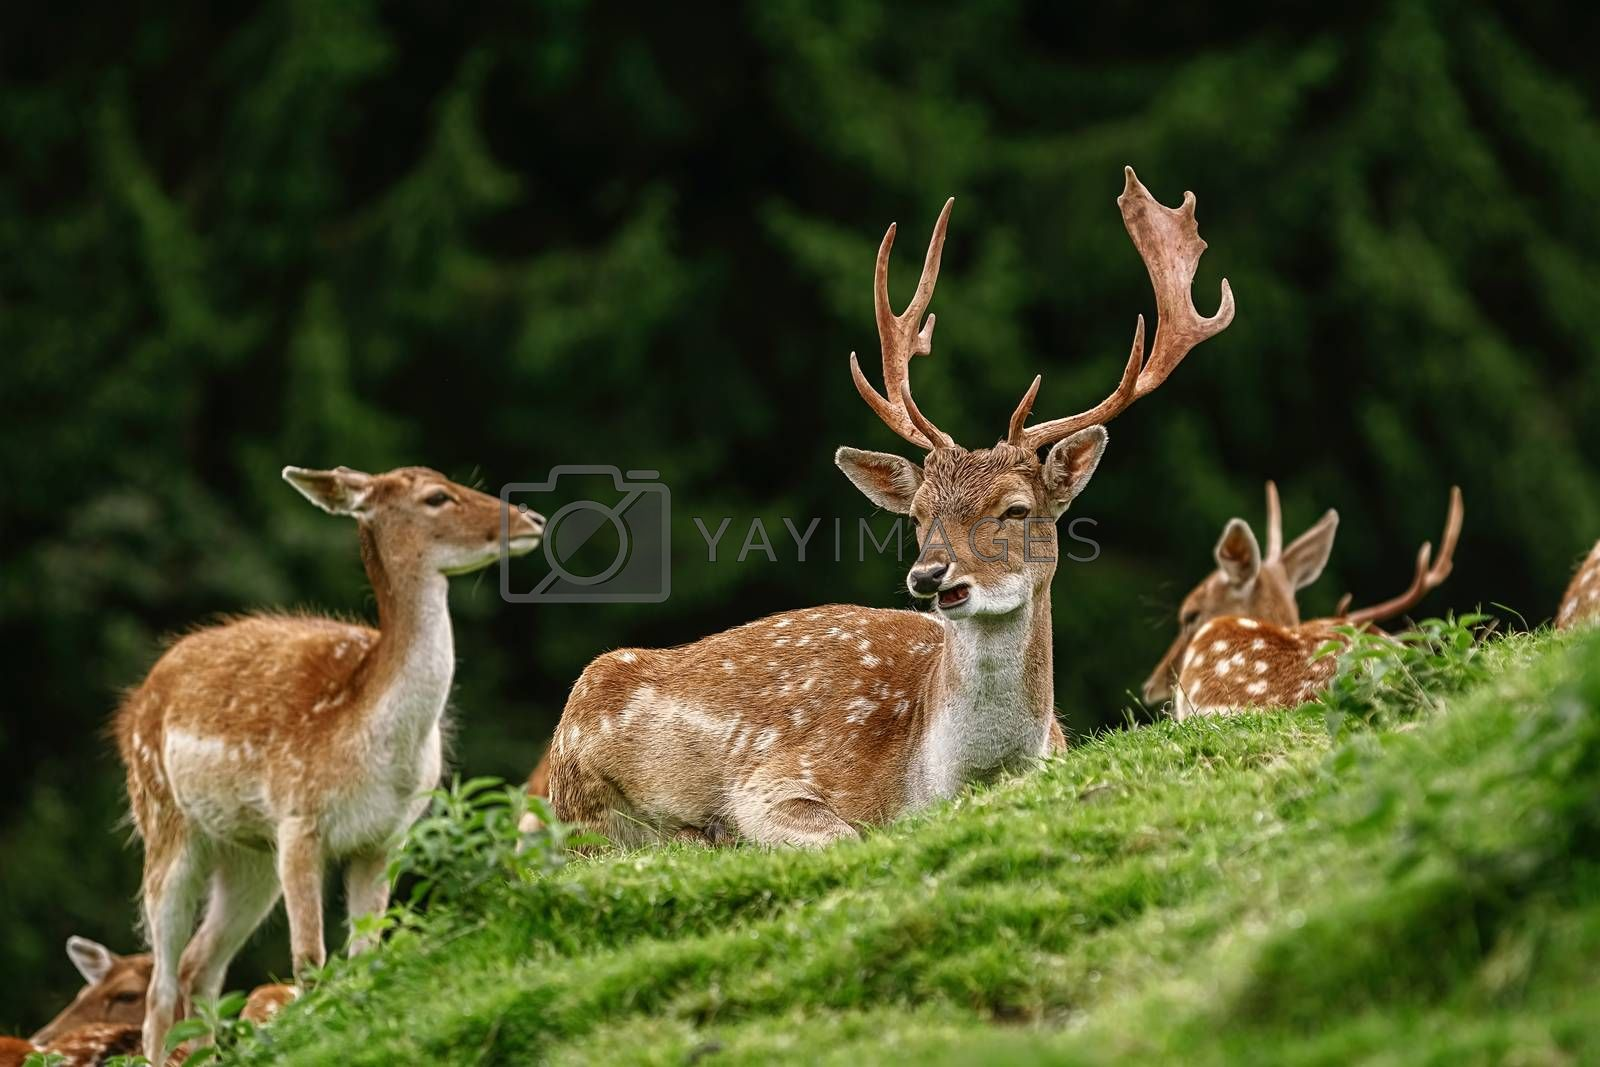 Deer Grazing near the Forest on the Slope of a Hill